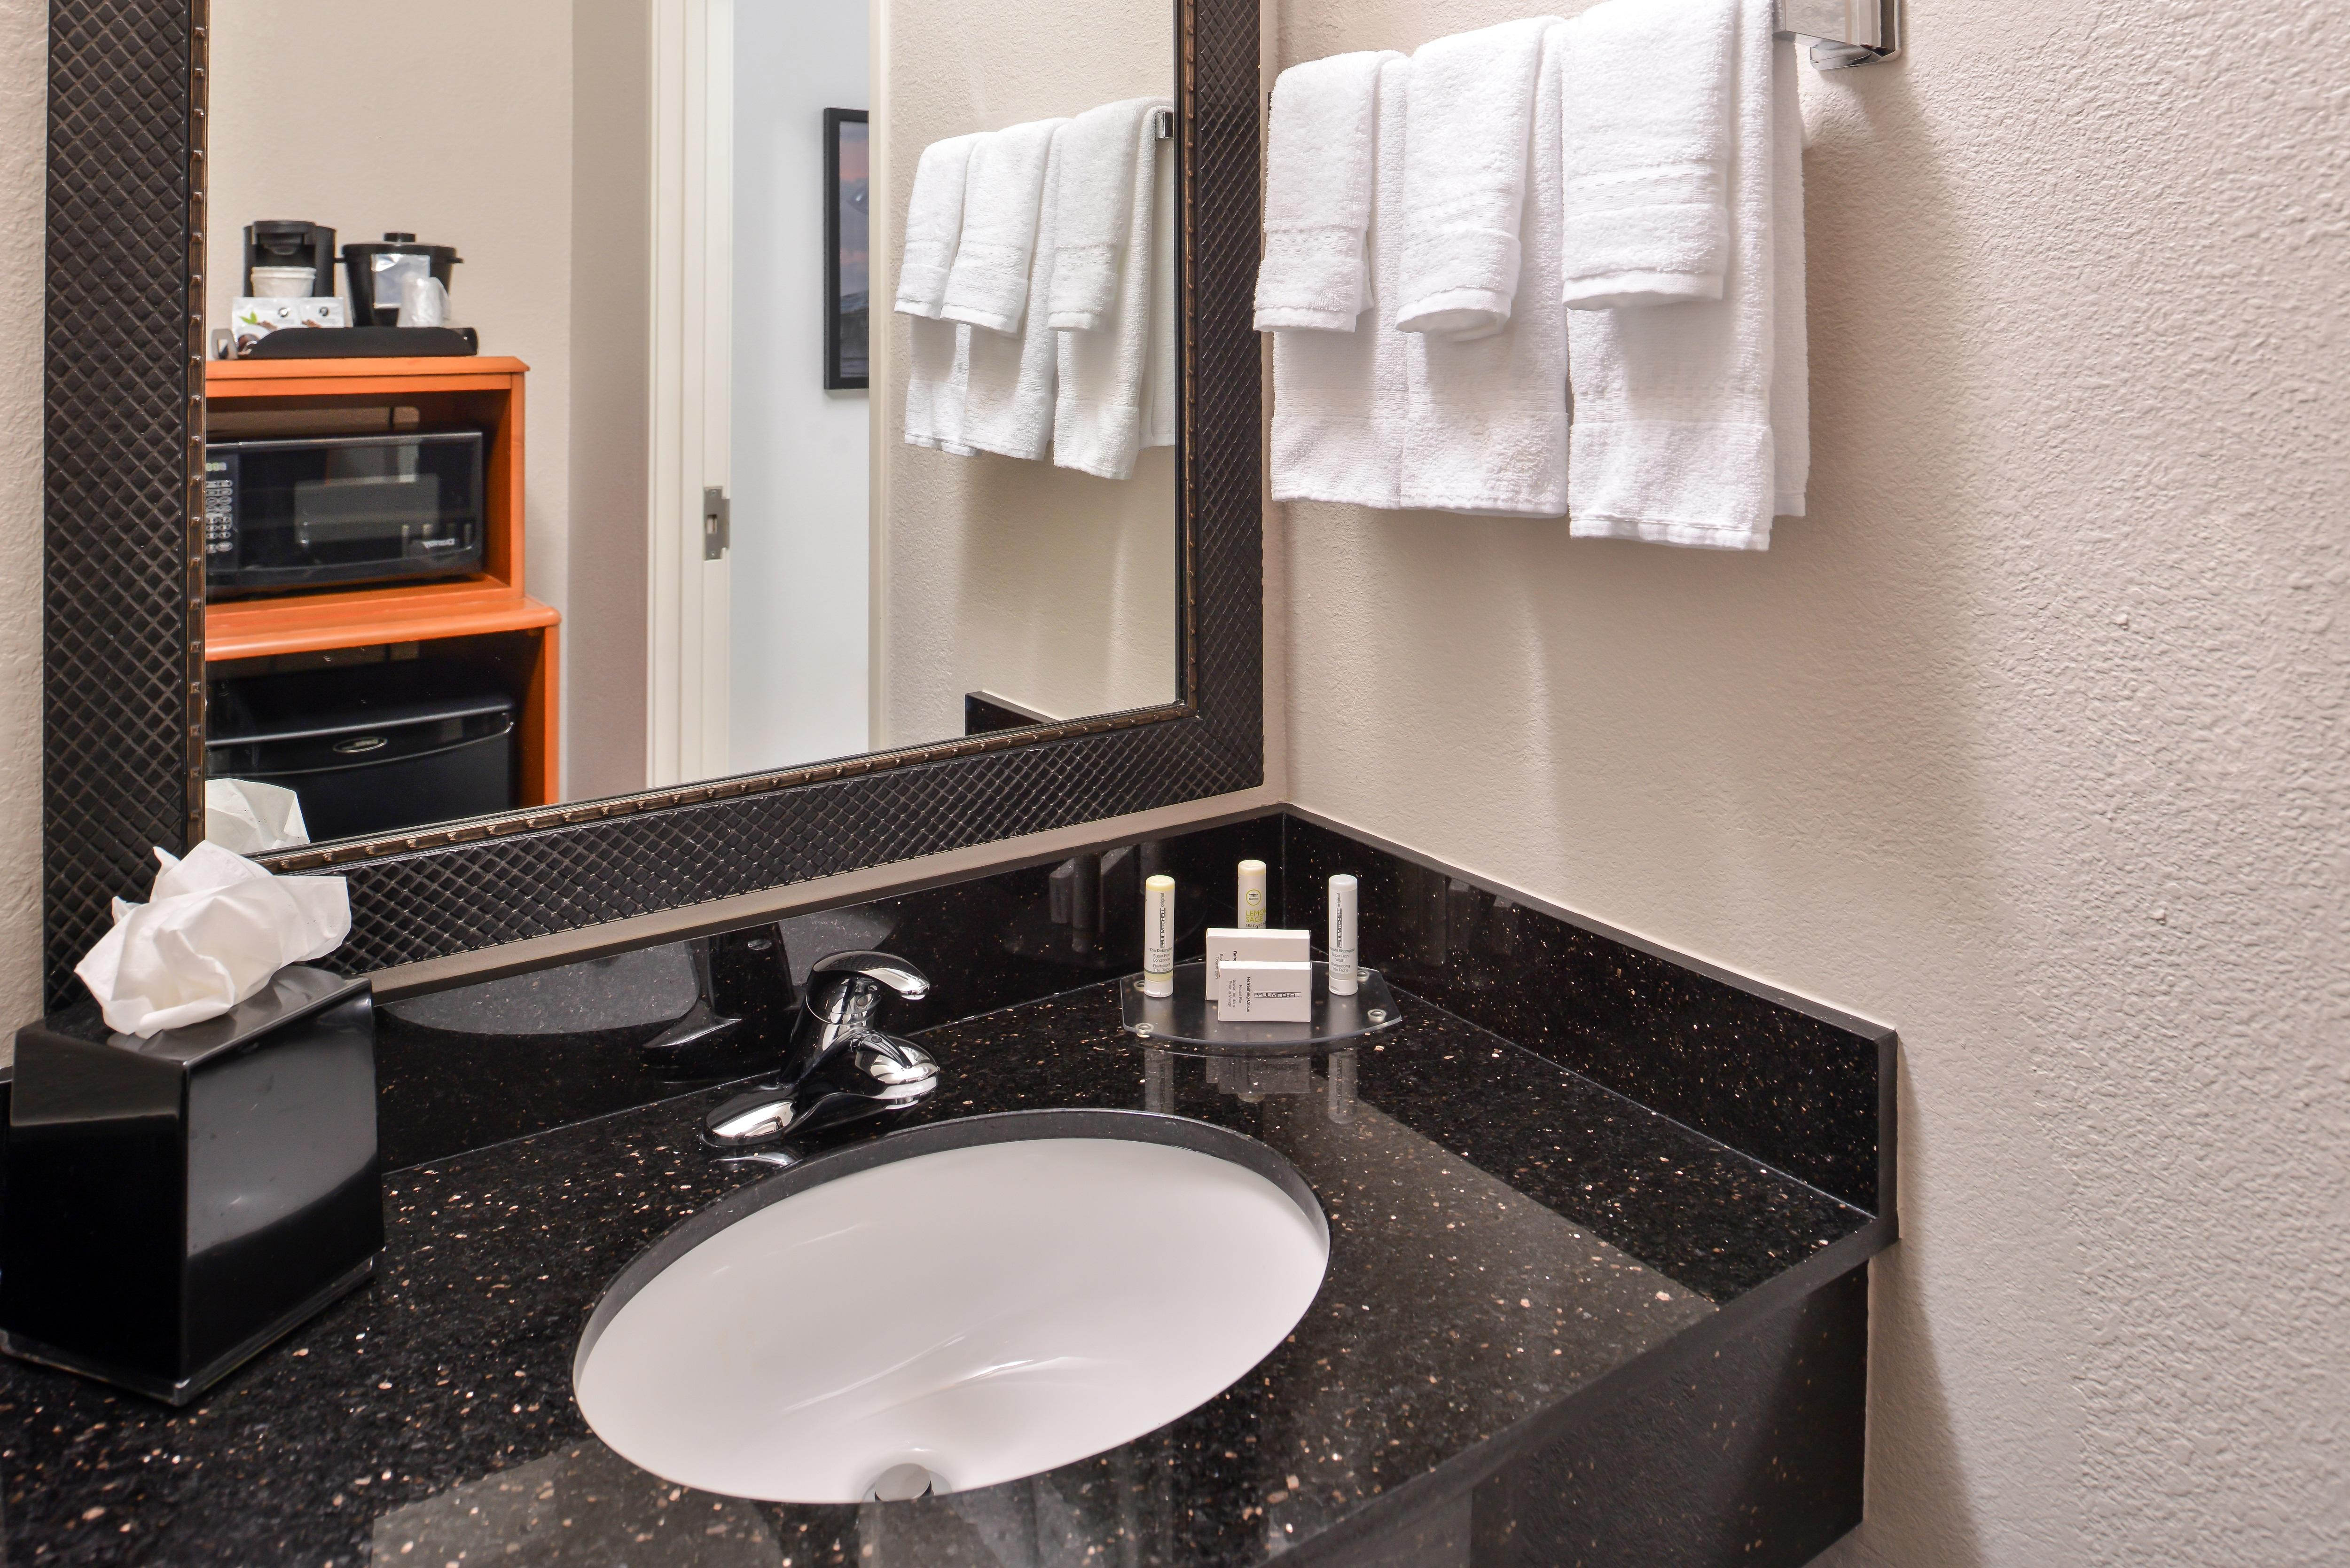 Fairfield Inn & Suites by Marriott Ocala image 2